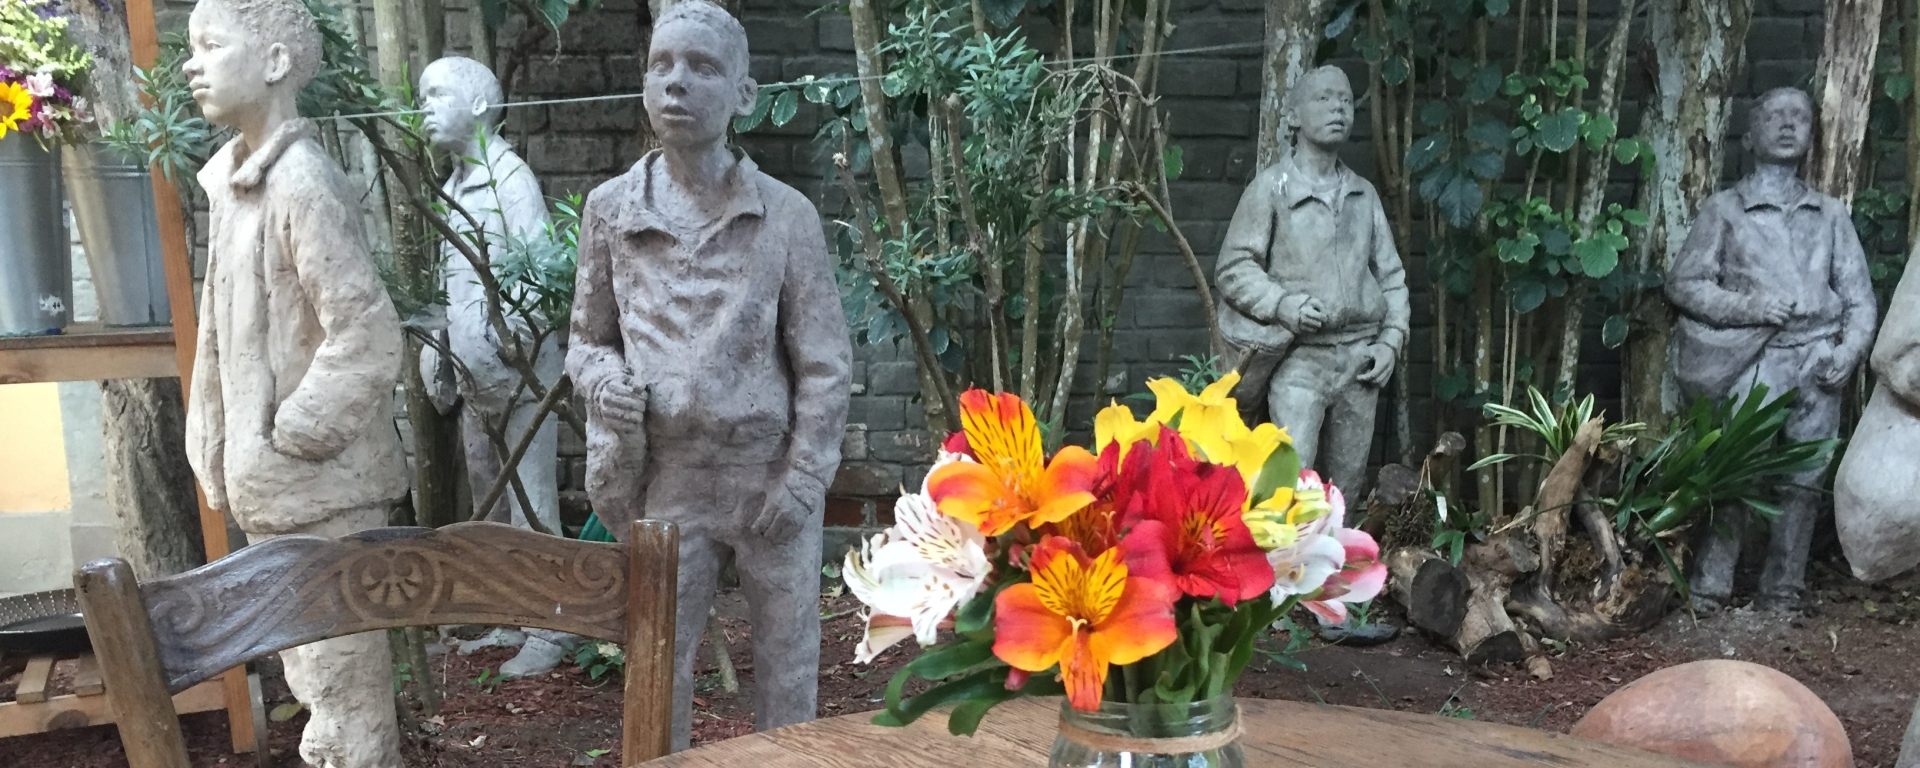 Wooden table with flowers in garden, Barranco, Lima, Peru with statues of children in the background